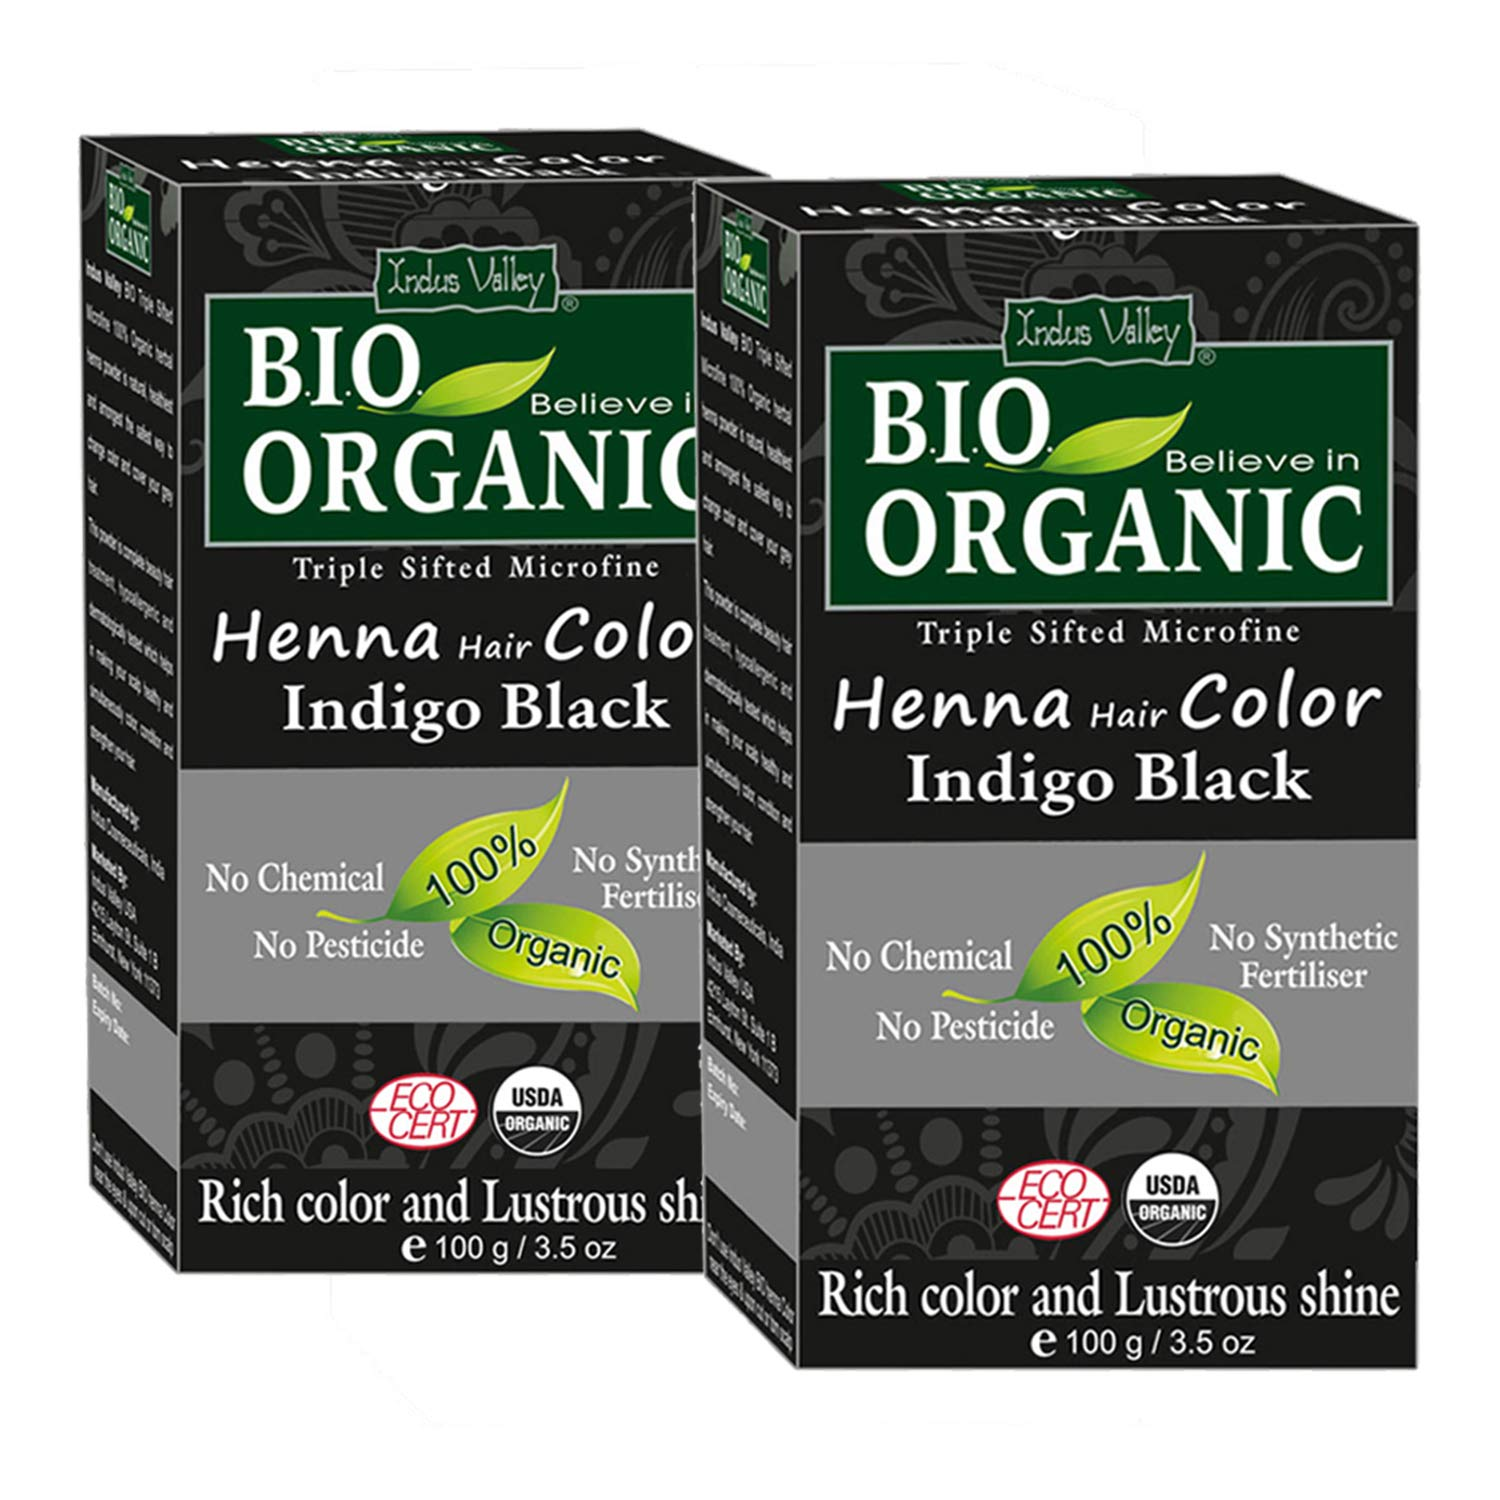 Indus Valley Bio Organic Micro fine Triple Shifted Premixed Henna Hair color with Organic Indigo for Rich Color & Lustrous Shine (Indigo Black -Twin Pack) 200 gm by INDUS VALLEY